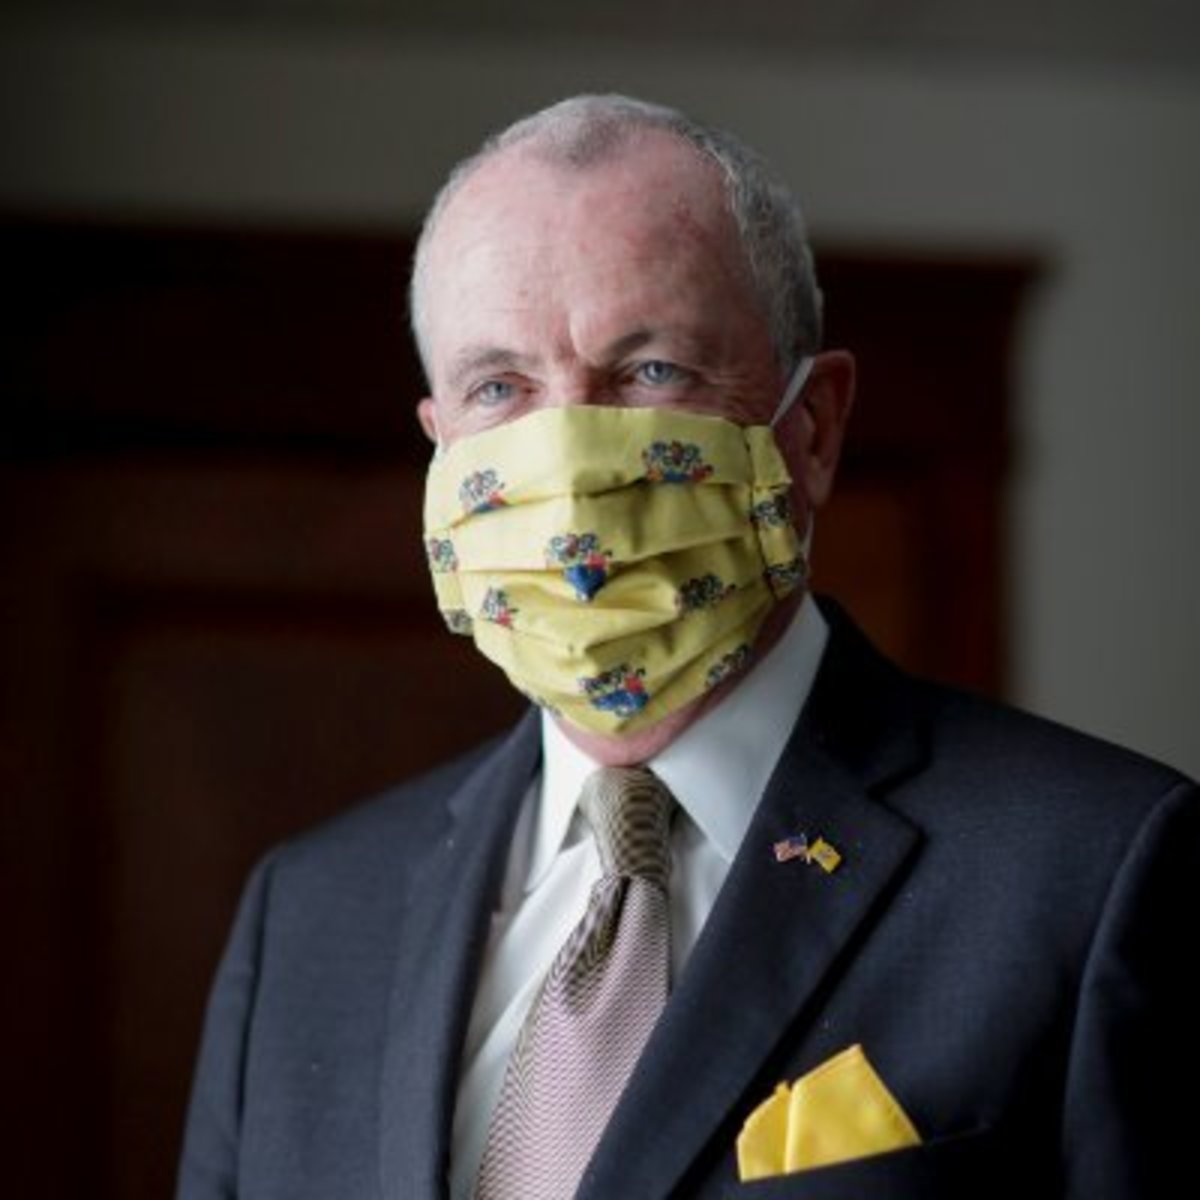 governor-murphys-mask-mandate-was-to-hide-his-ugly-face